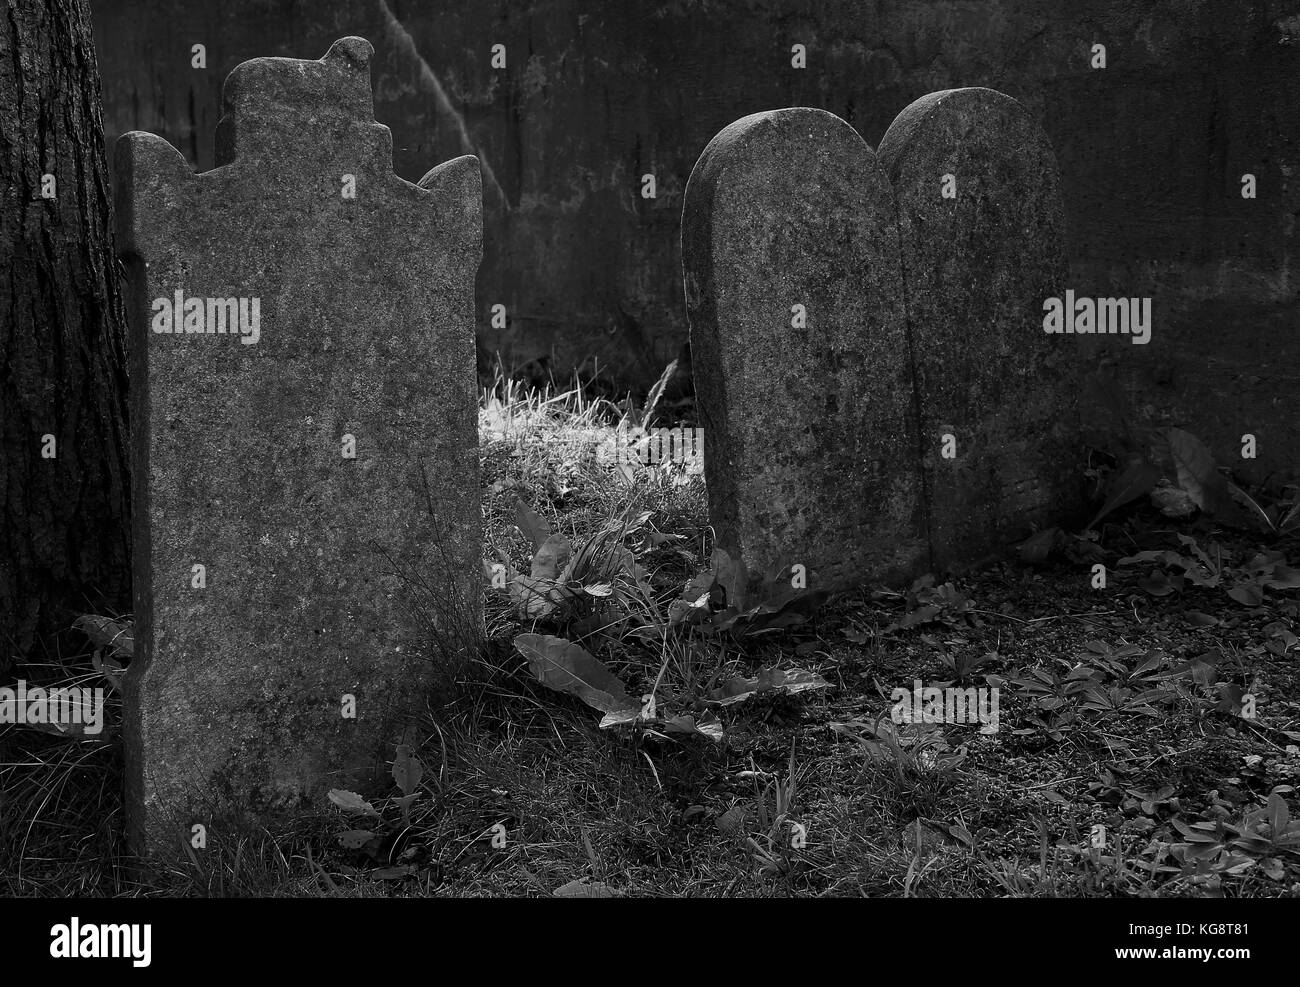 Old, worn and weathered tombstones in the corner of the cemetery. General Protestant Cemetery, St. John's, Newfoundland - Stock Image